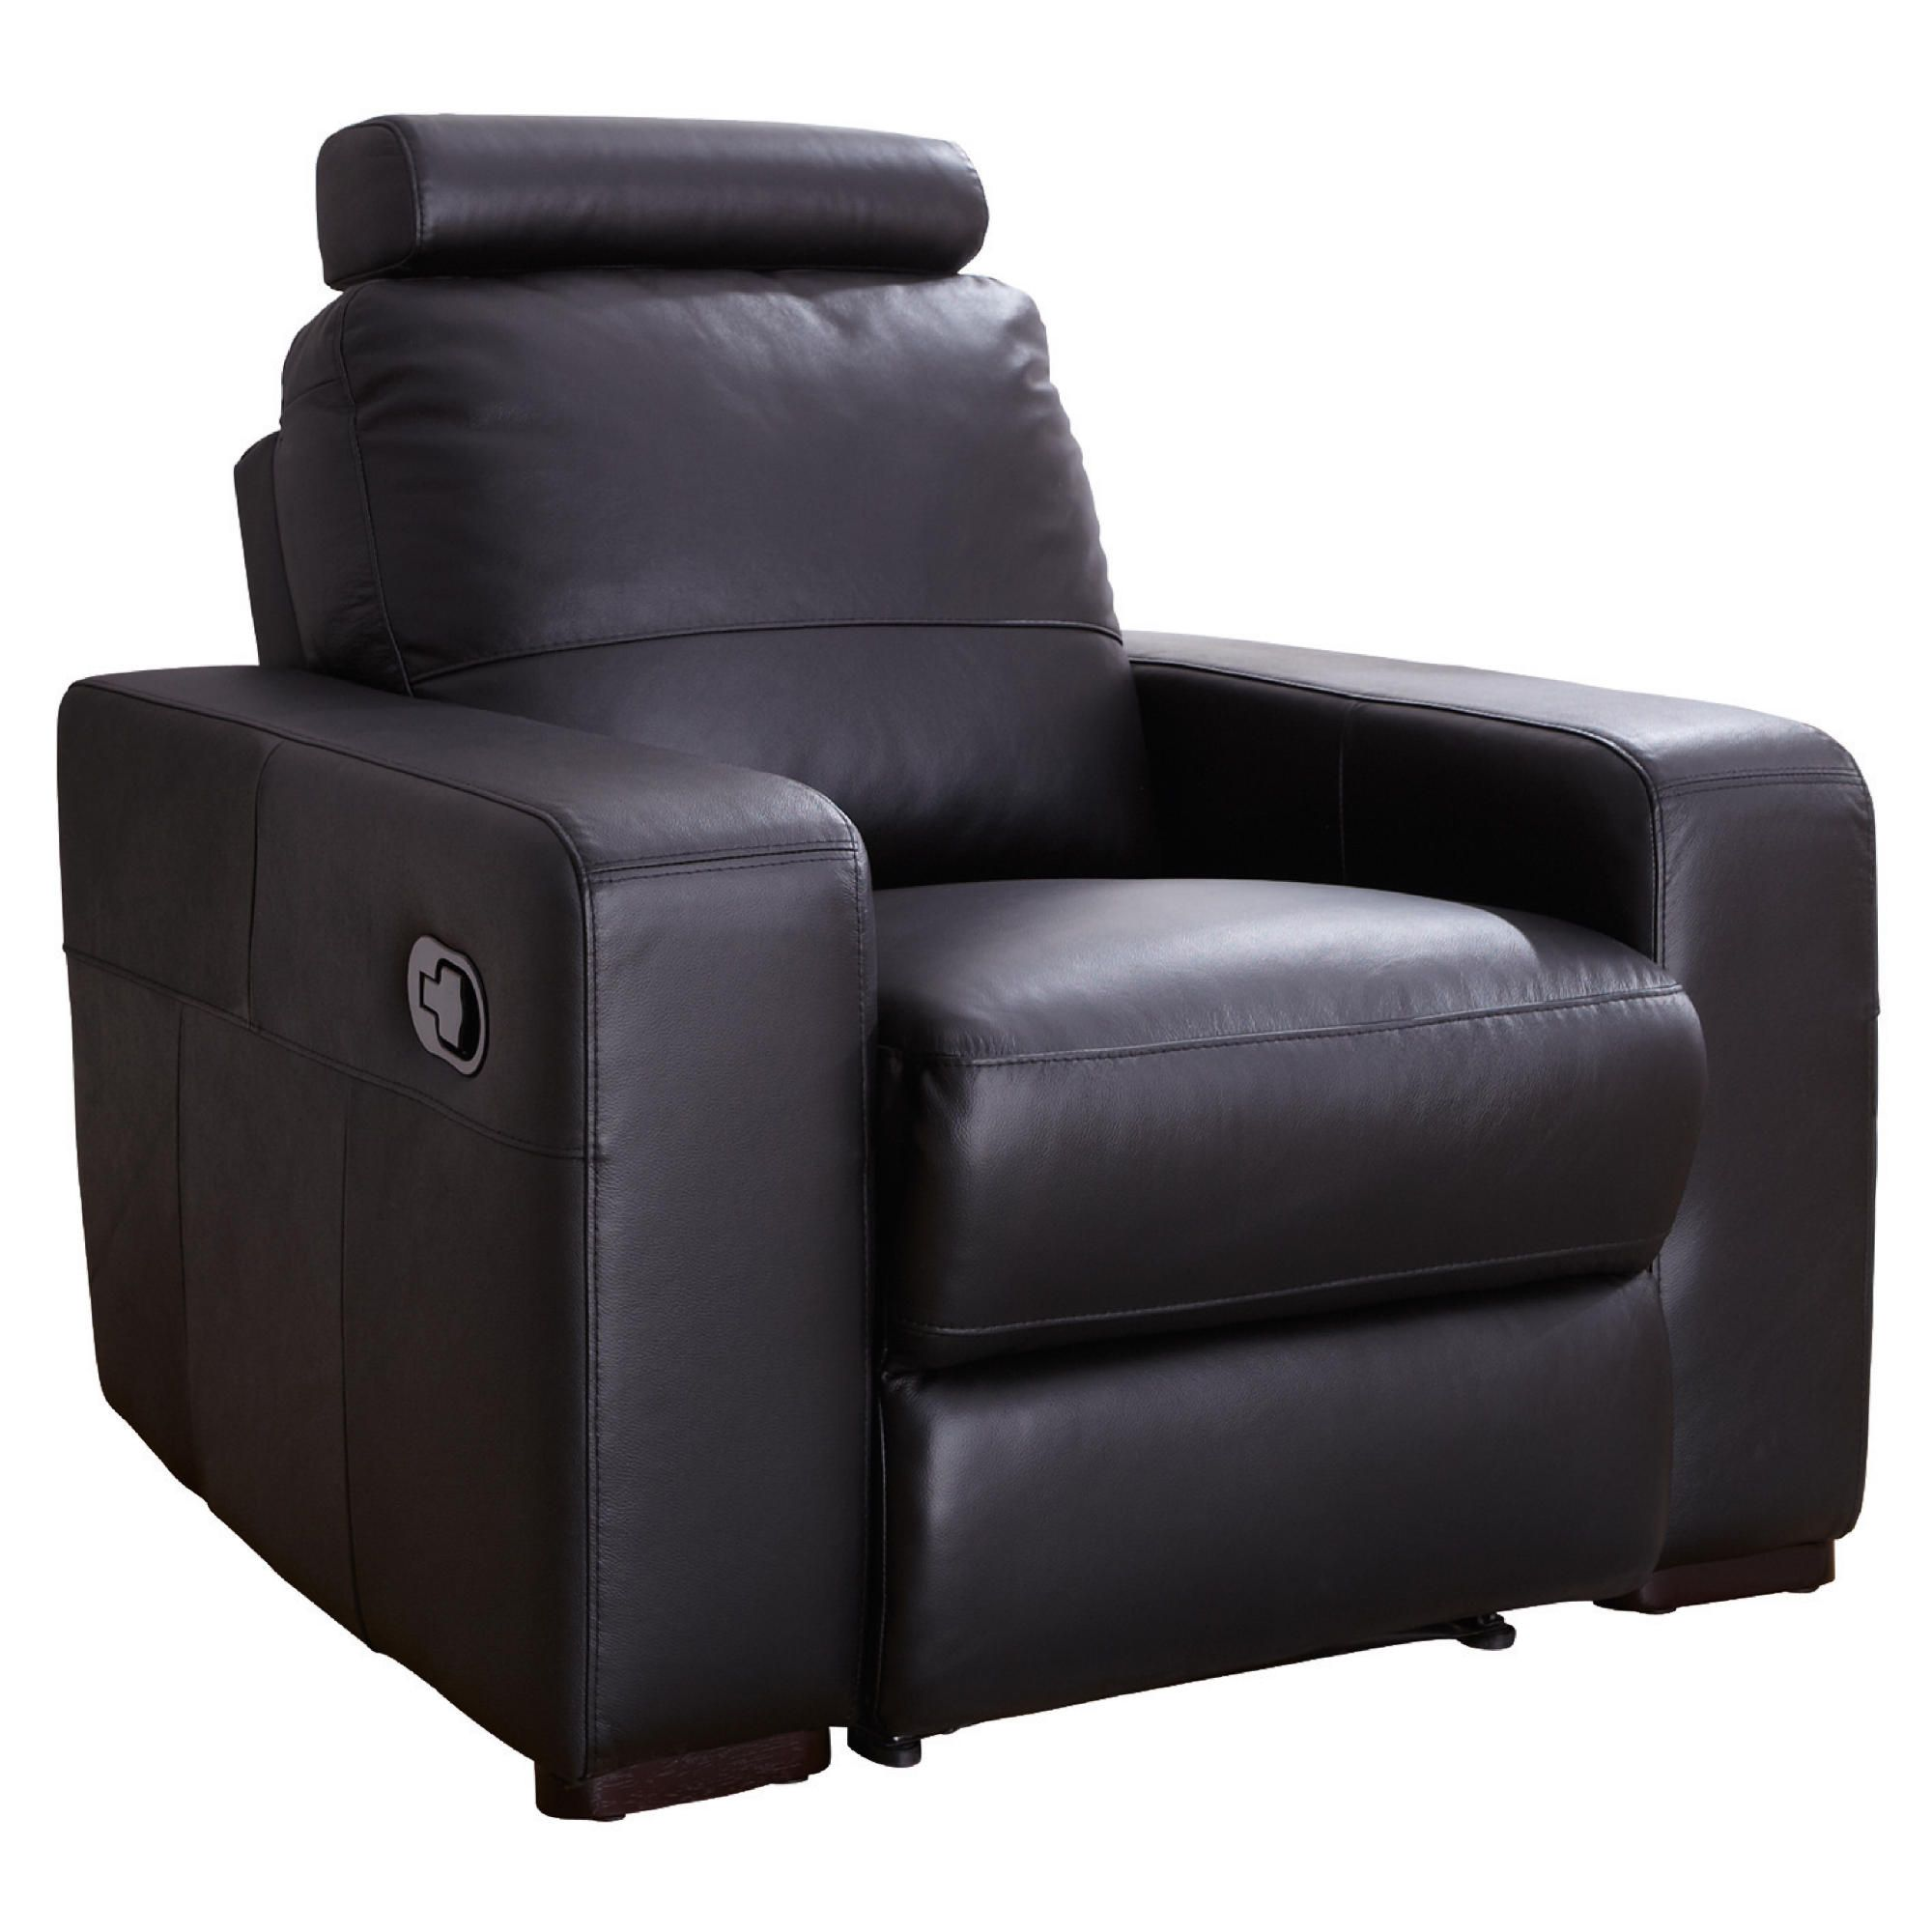 Barcelona Leather Recliner Armchair Black at Tesco Direct